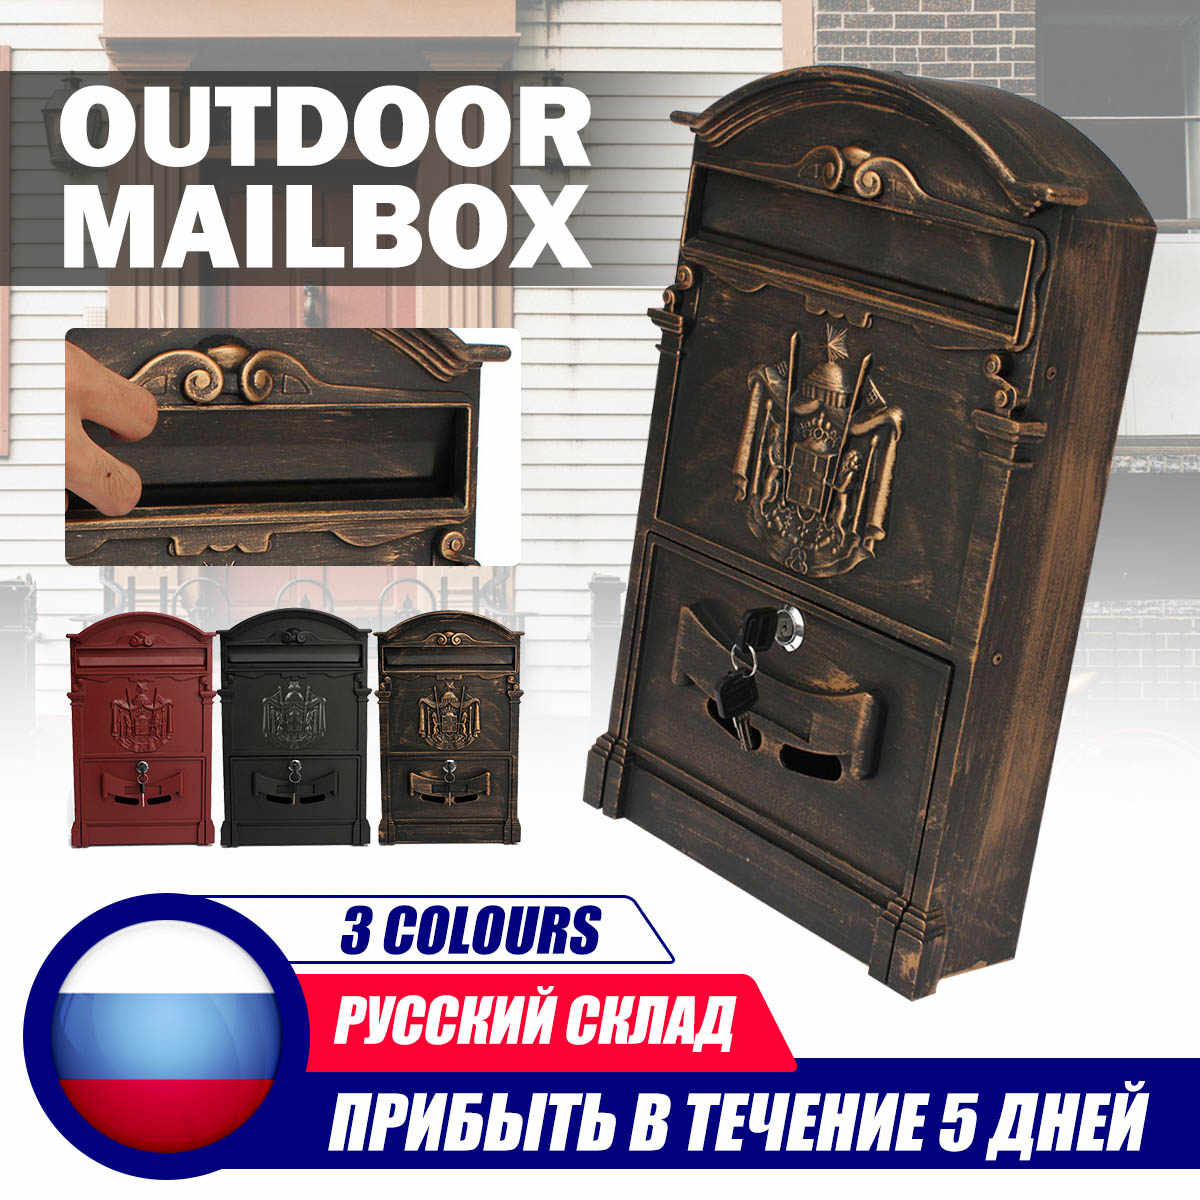 3 Color Retro Mailbox Villas Post Box European Lockable Outdoor Wall Newspaper Boxes Secure Letterbox Garden Home Decoration